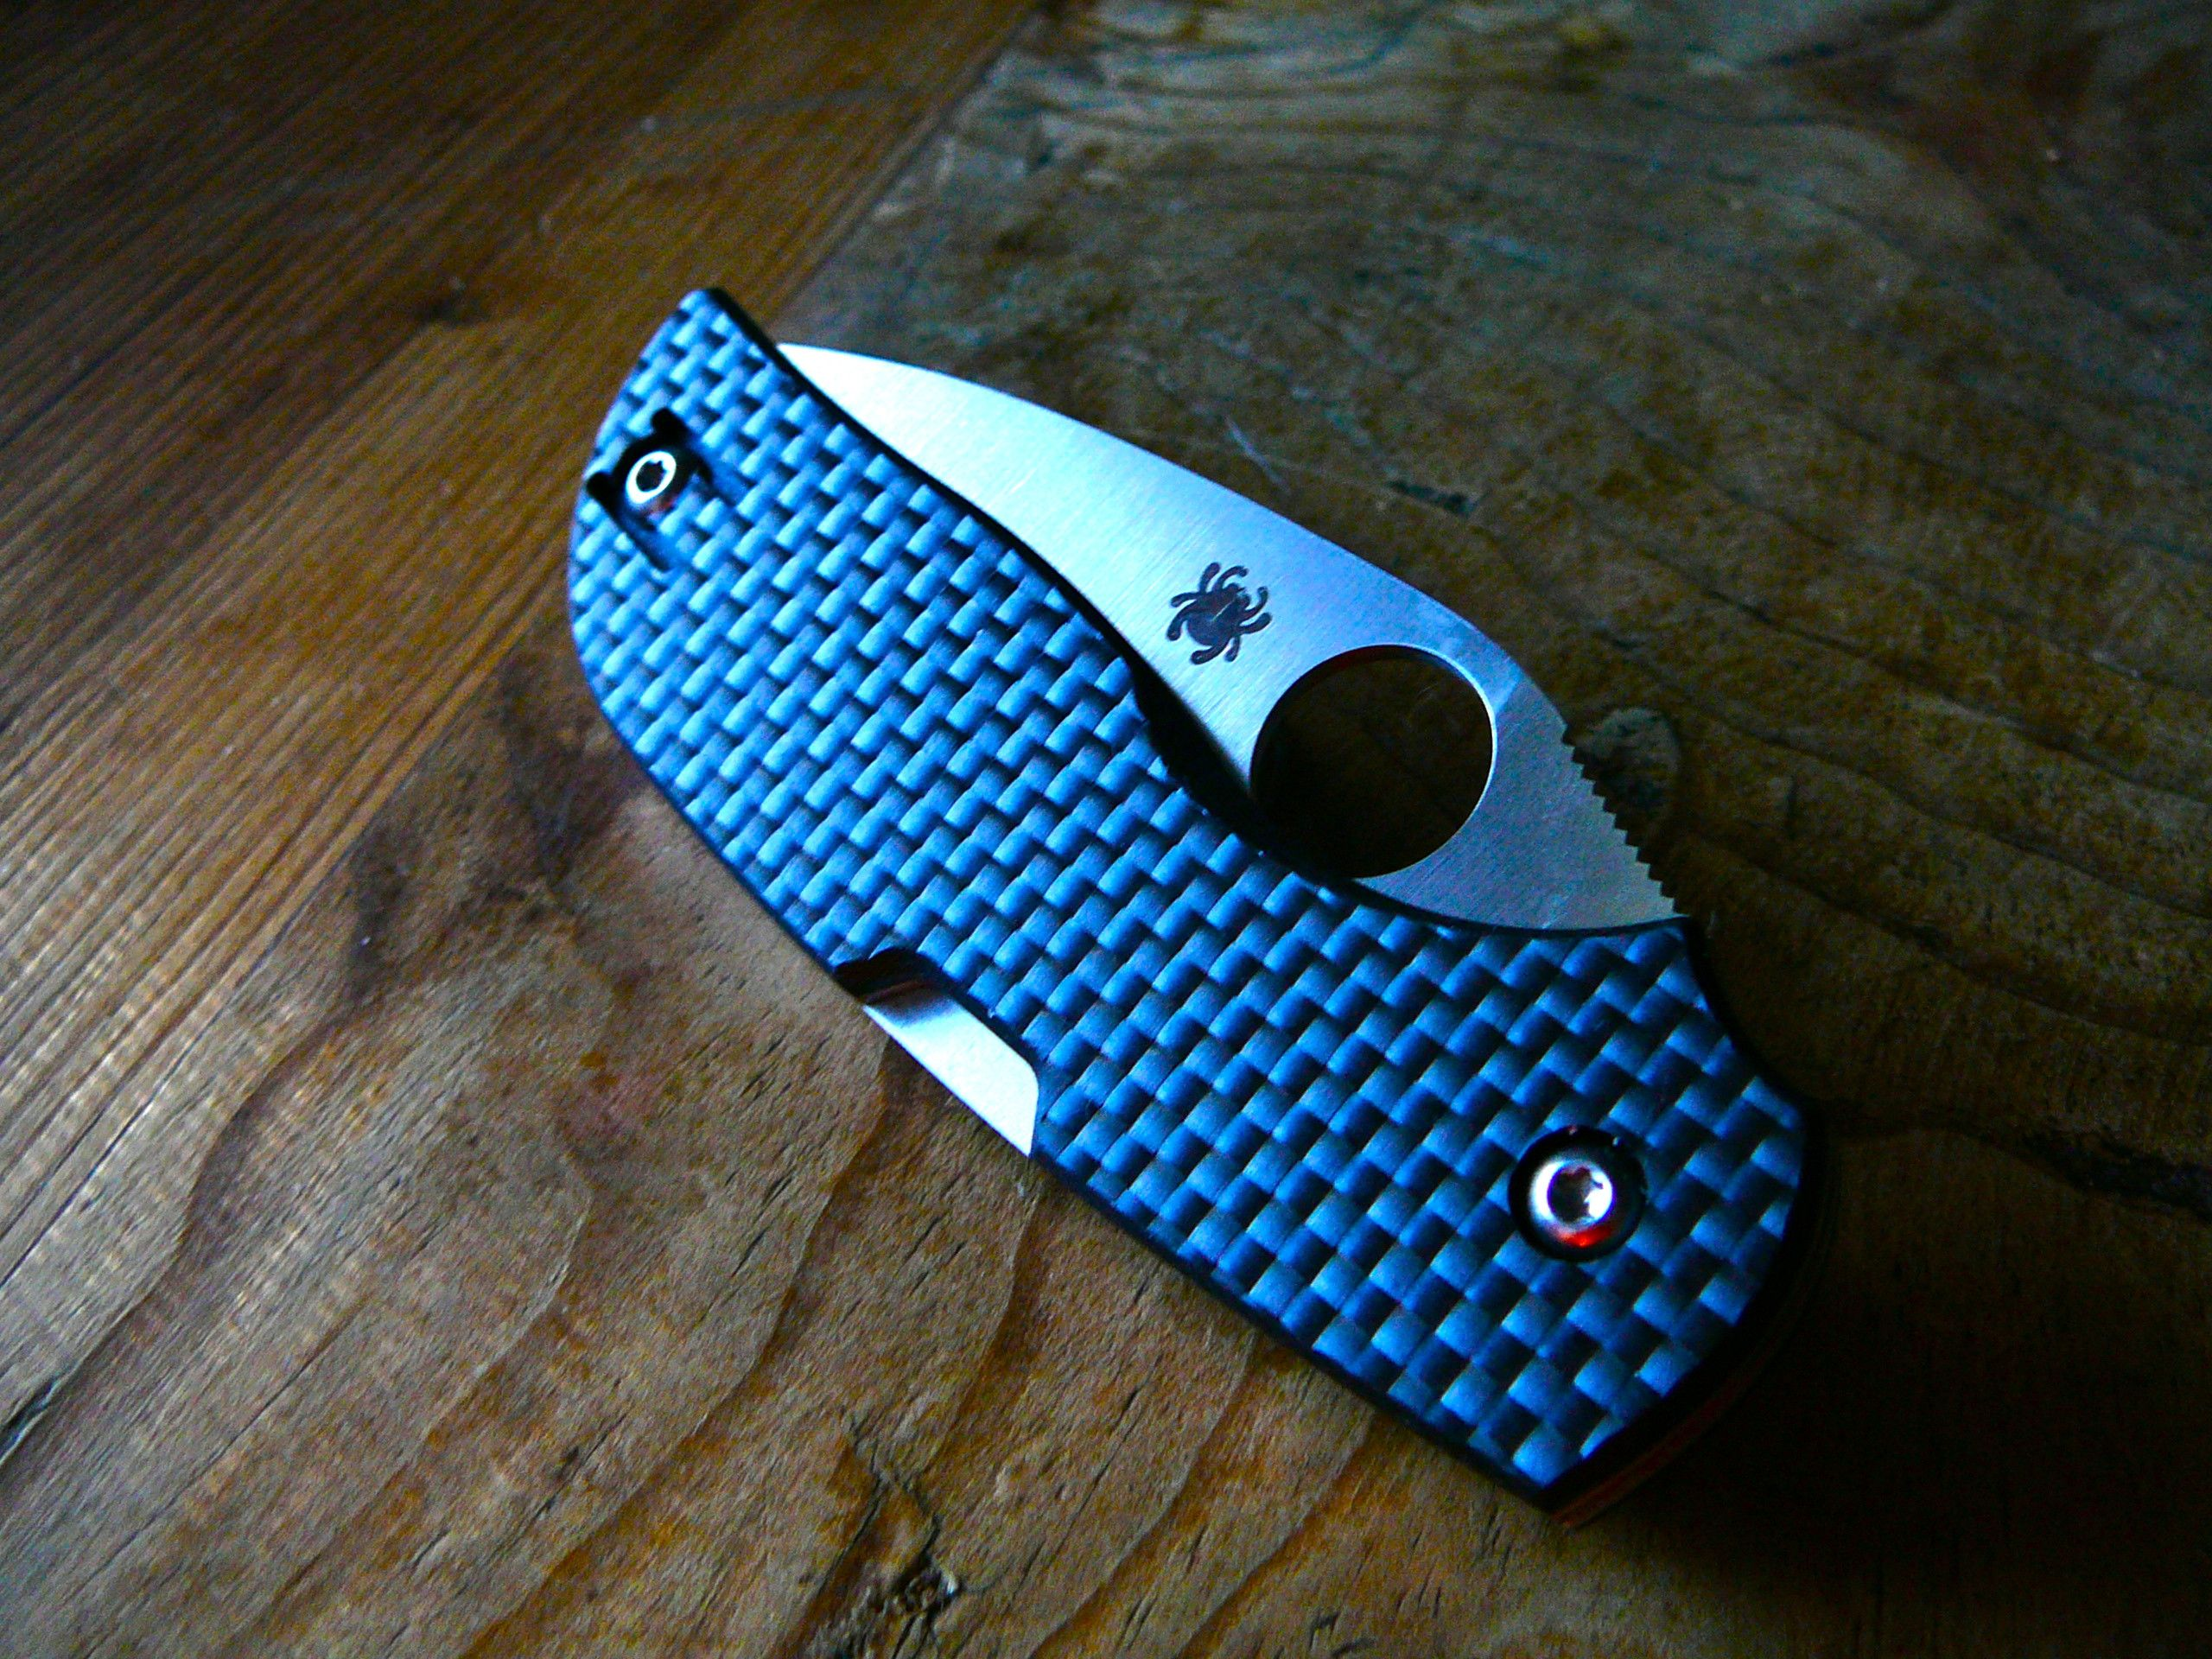 Spyderco Chaparral--Carbon Fiber scales and CTS-XHP super